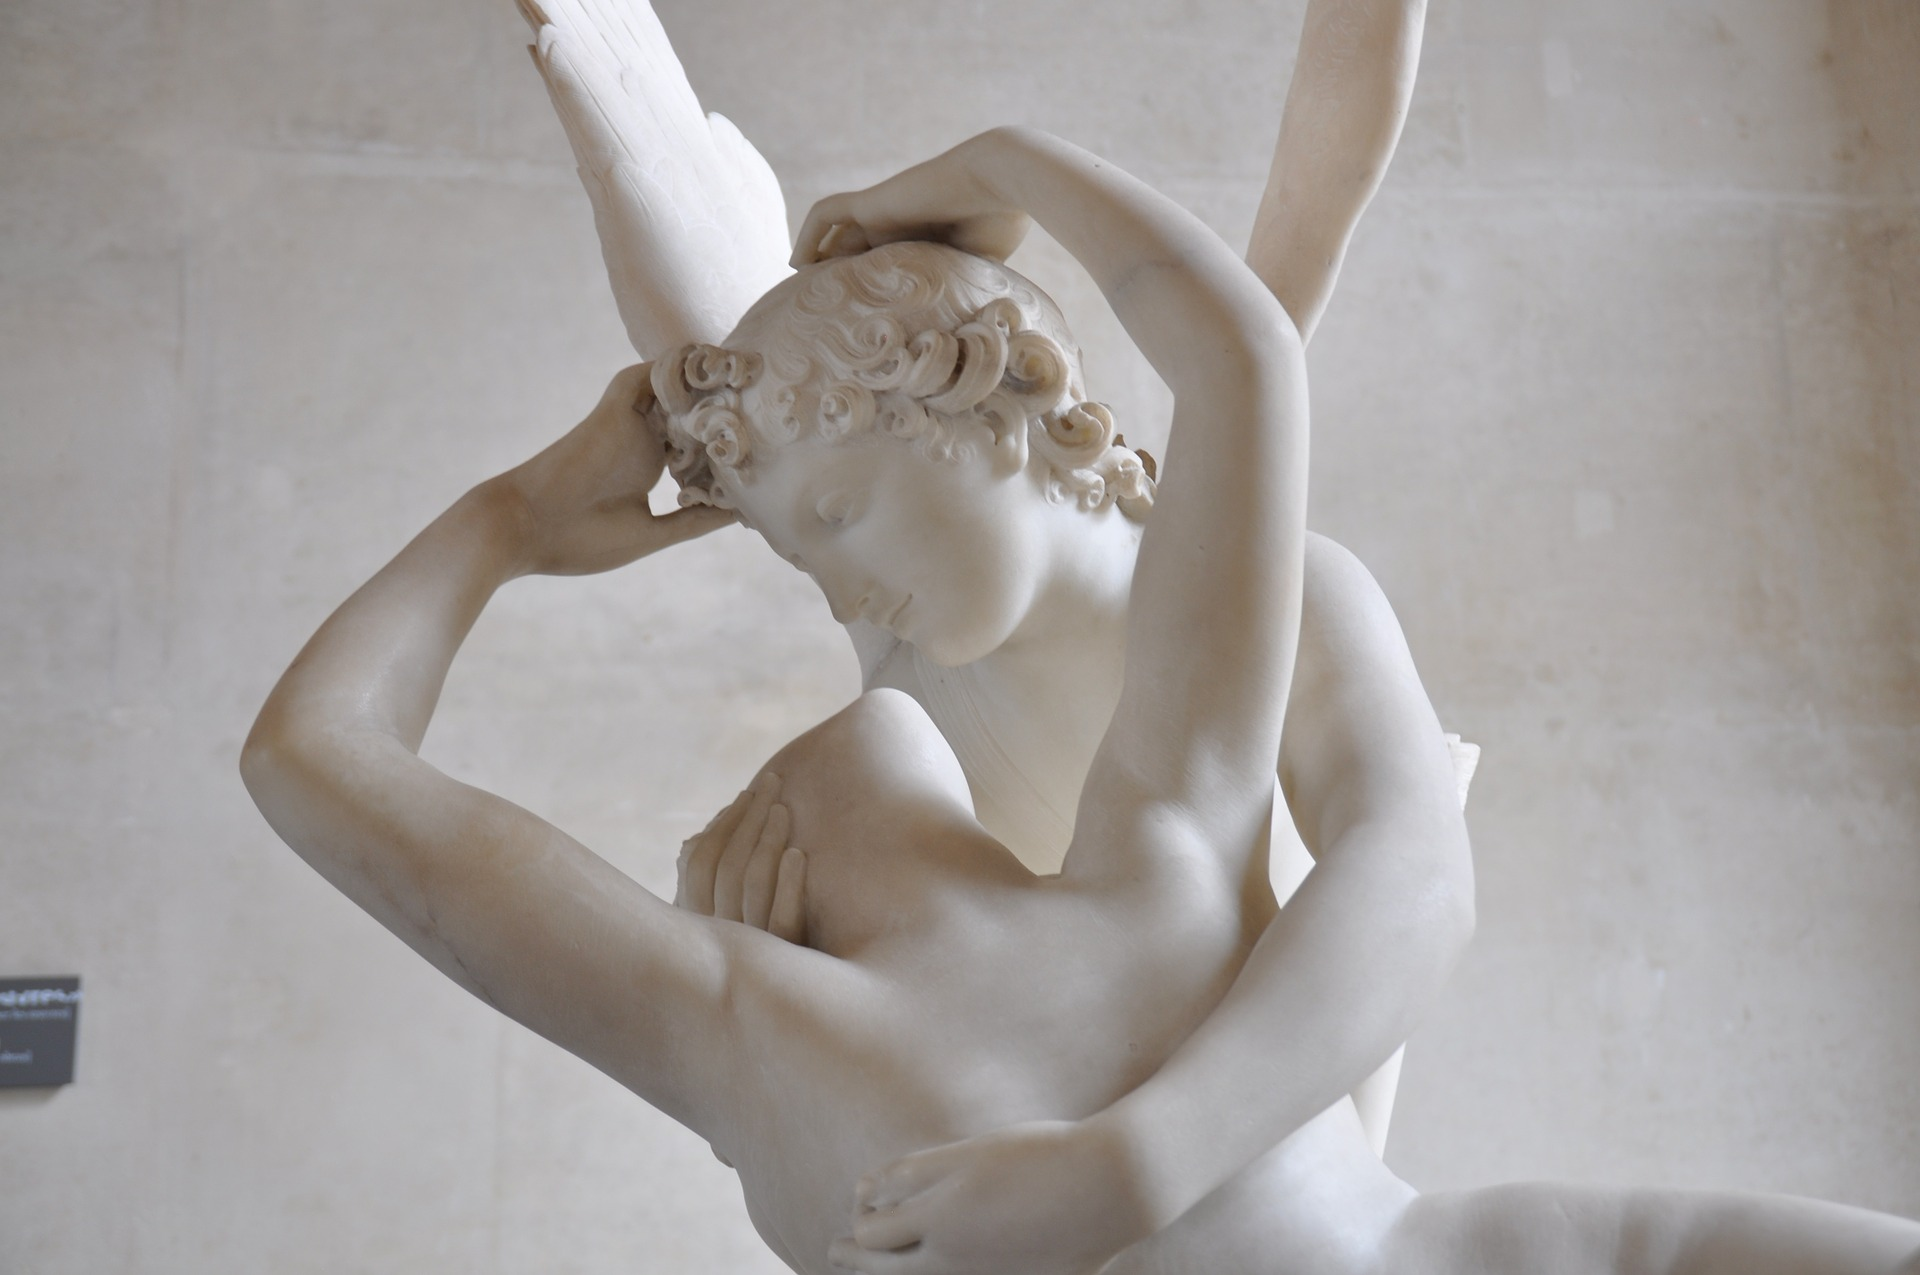 cupid-and-psyche-1349941_1920